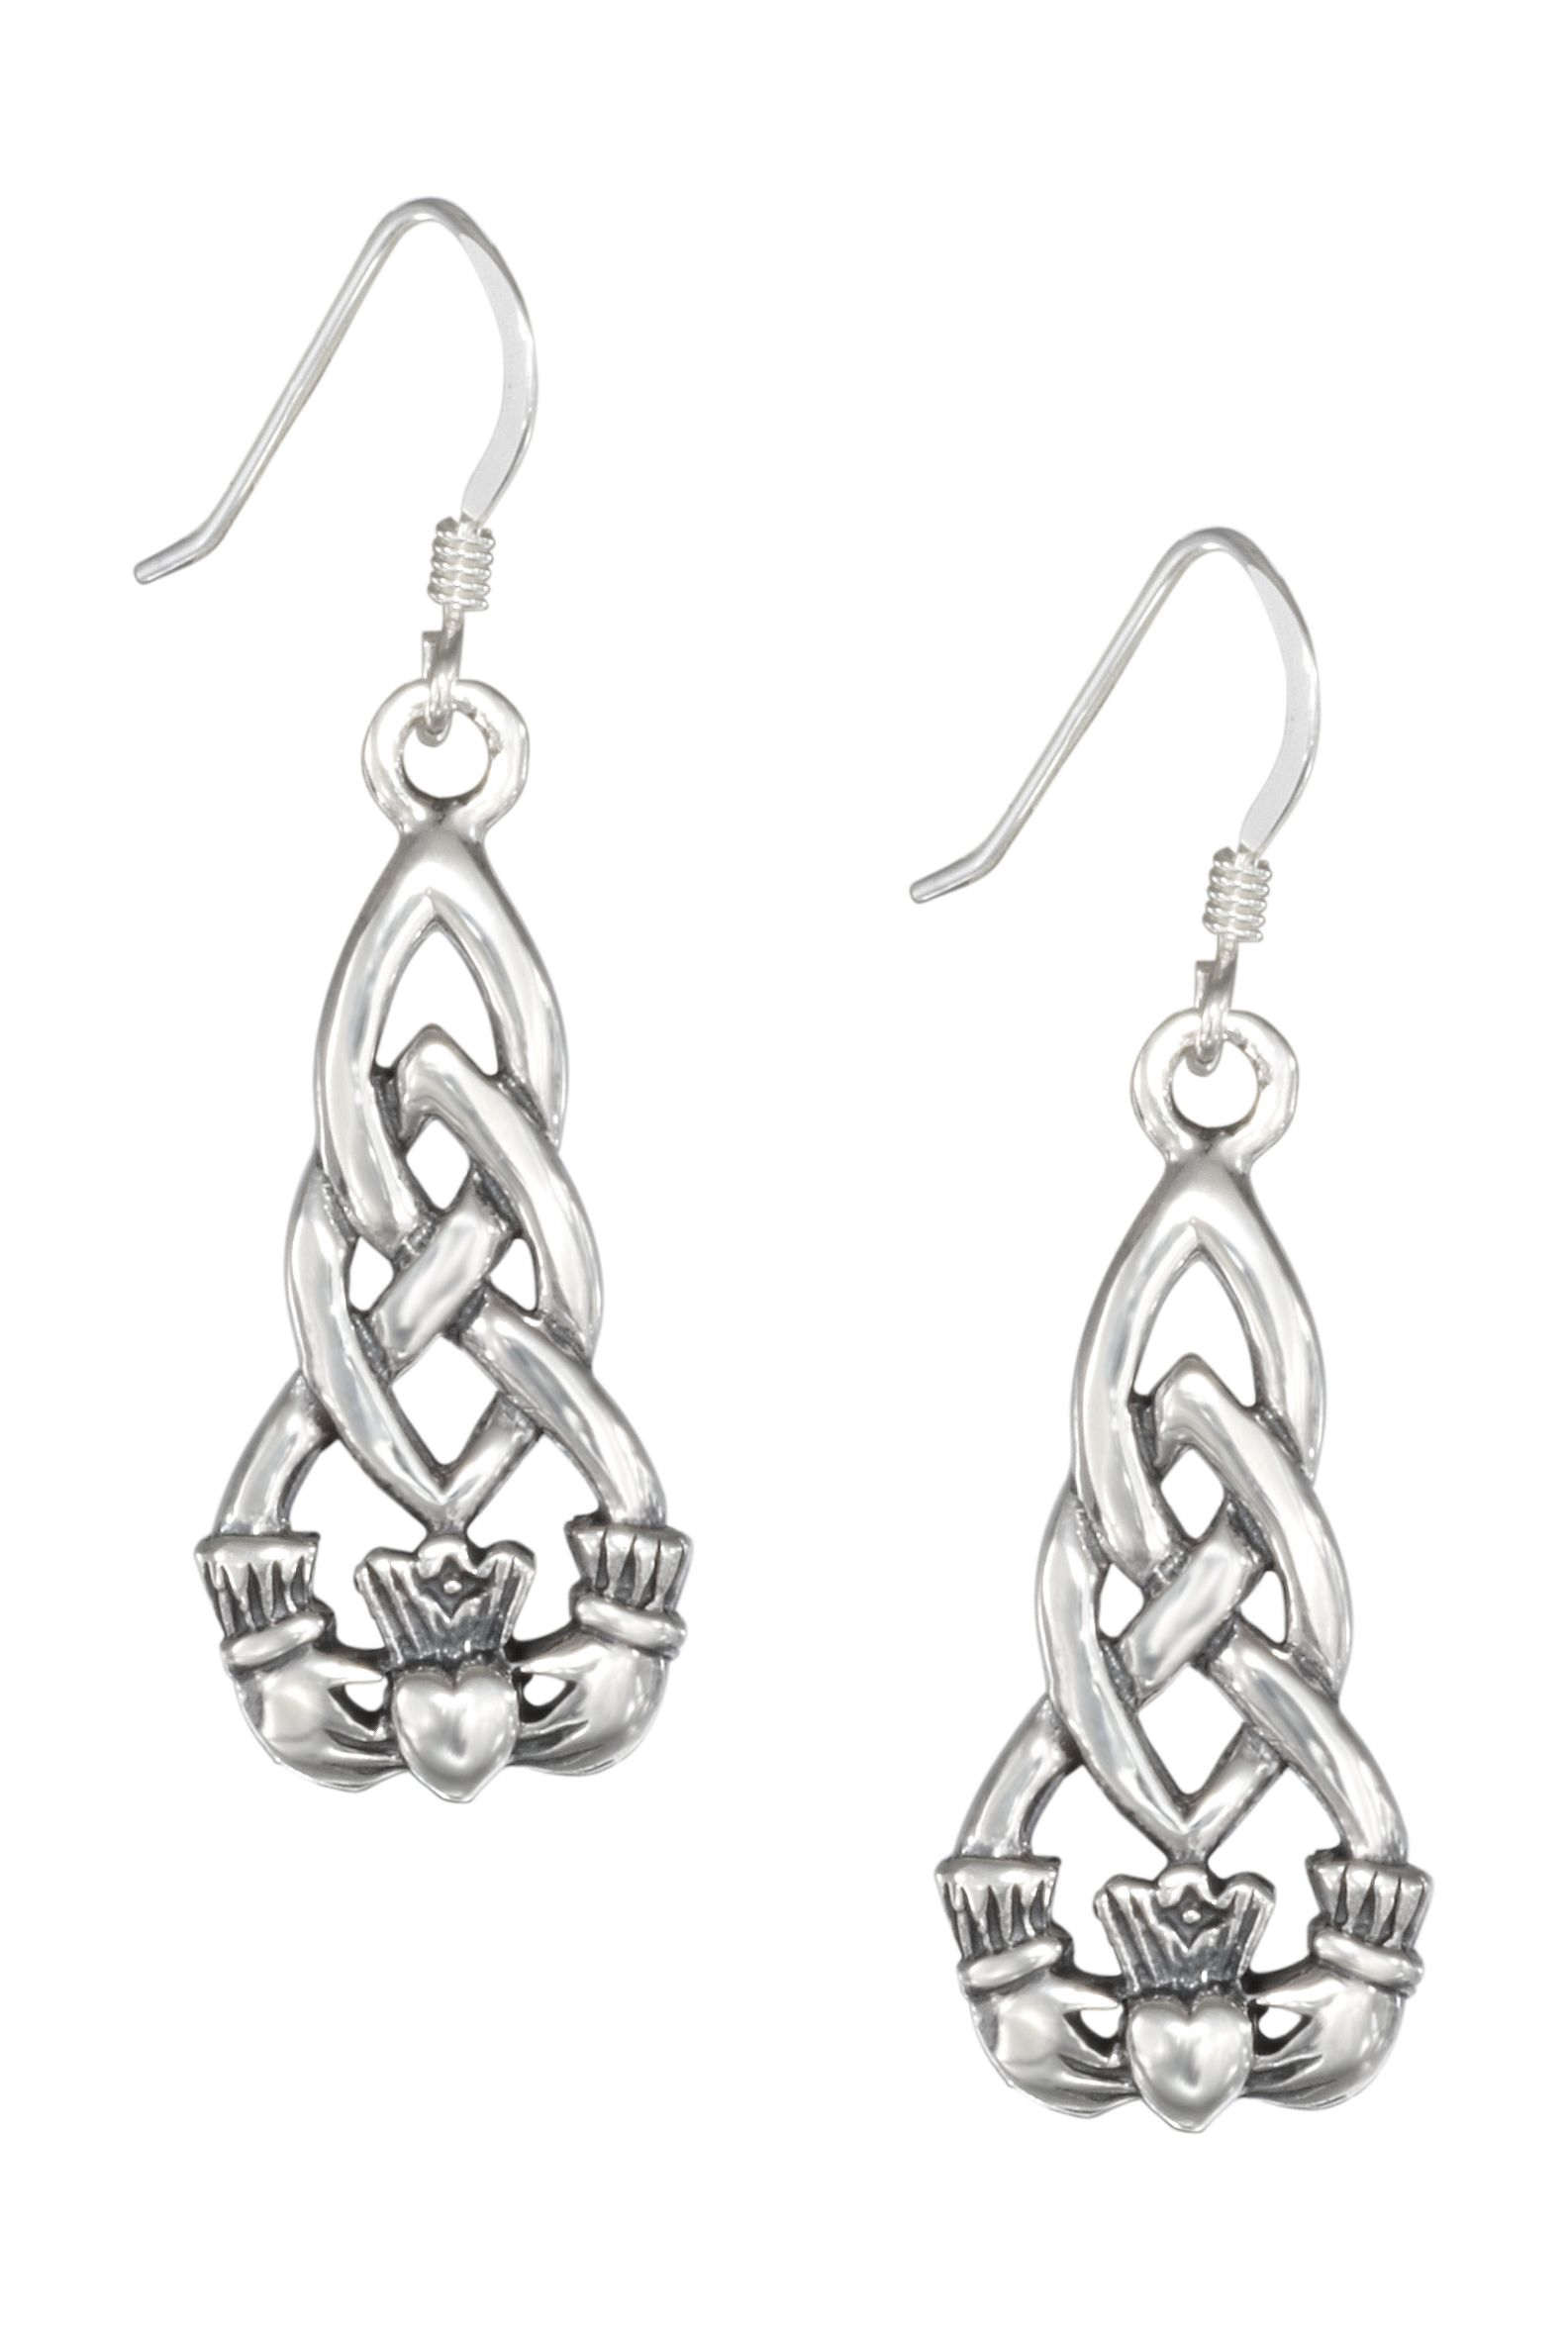 Earrings of Sterling Silver with Celtic knots and Irish Claddagh ...